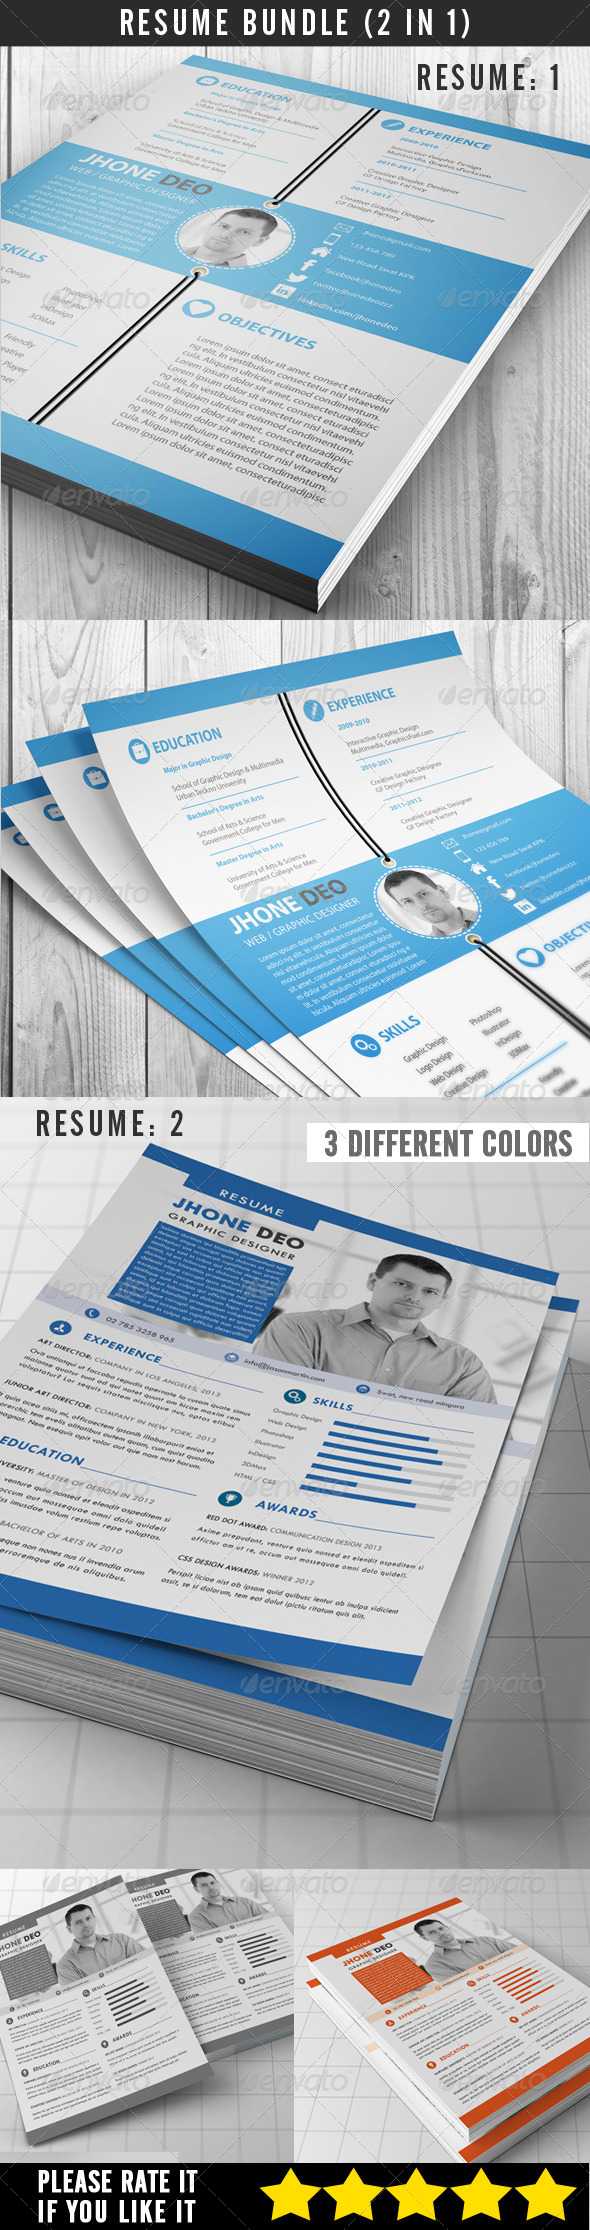 GraphicRiver Resume Bundle 2 in 1 7481010